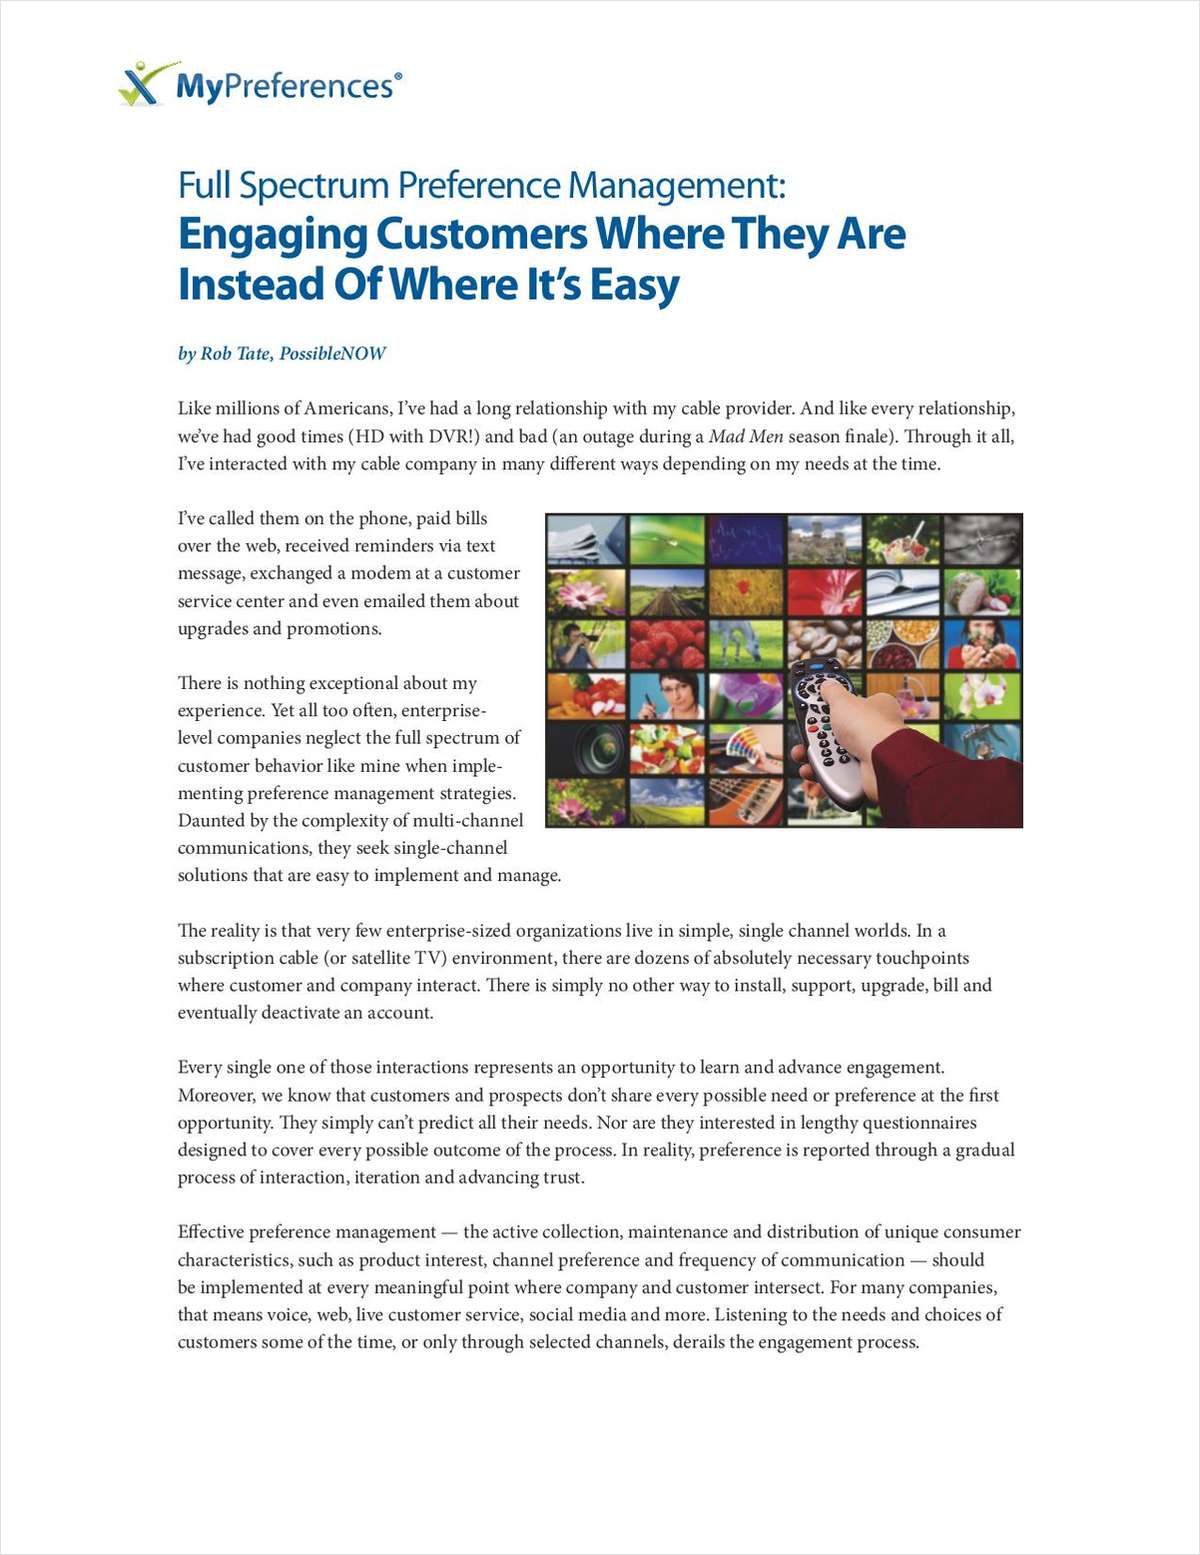 Full Spectrum Preference Management: Engaging Customers Where They Are Instead Of Where It's Easy